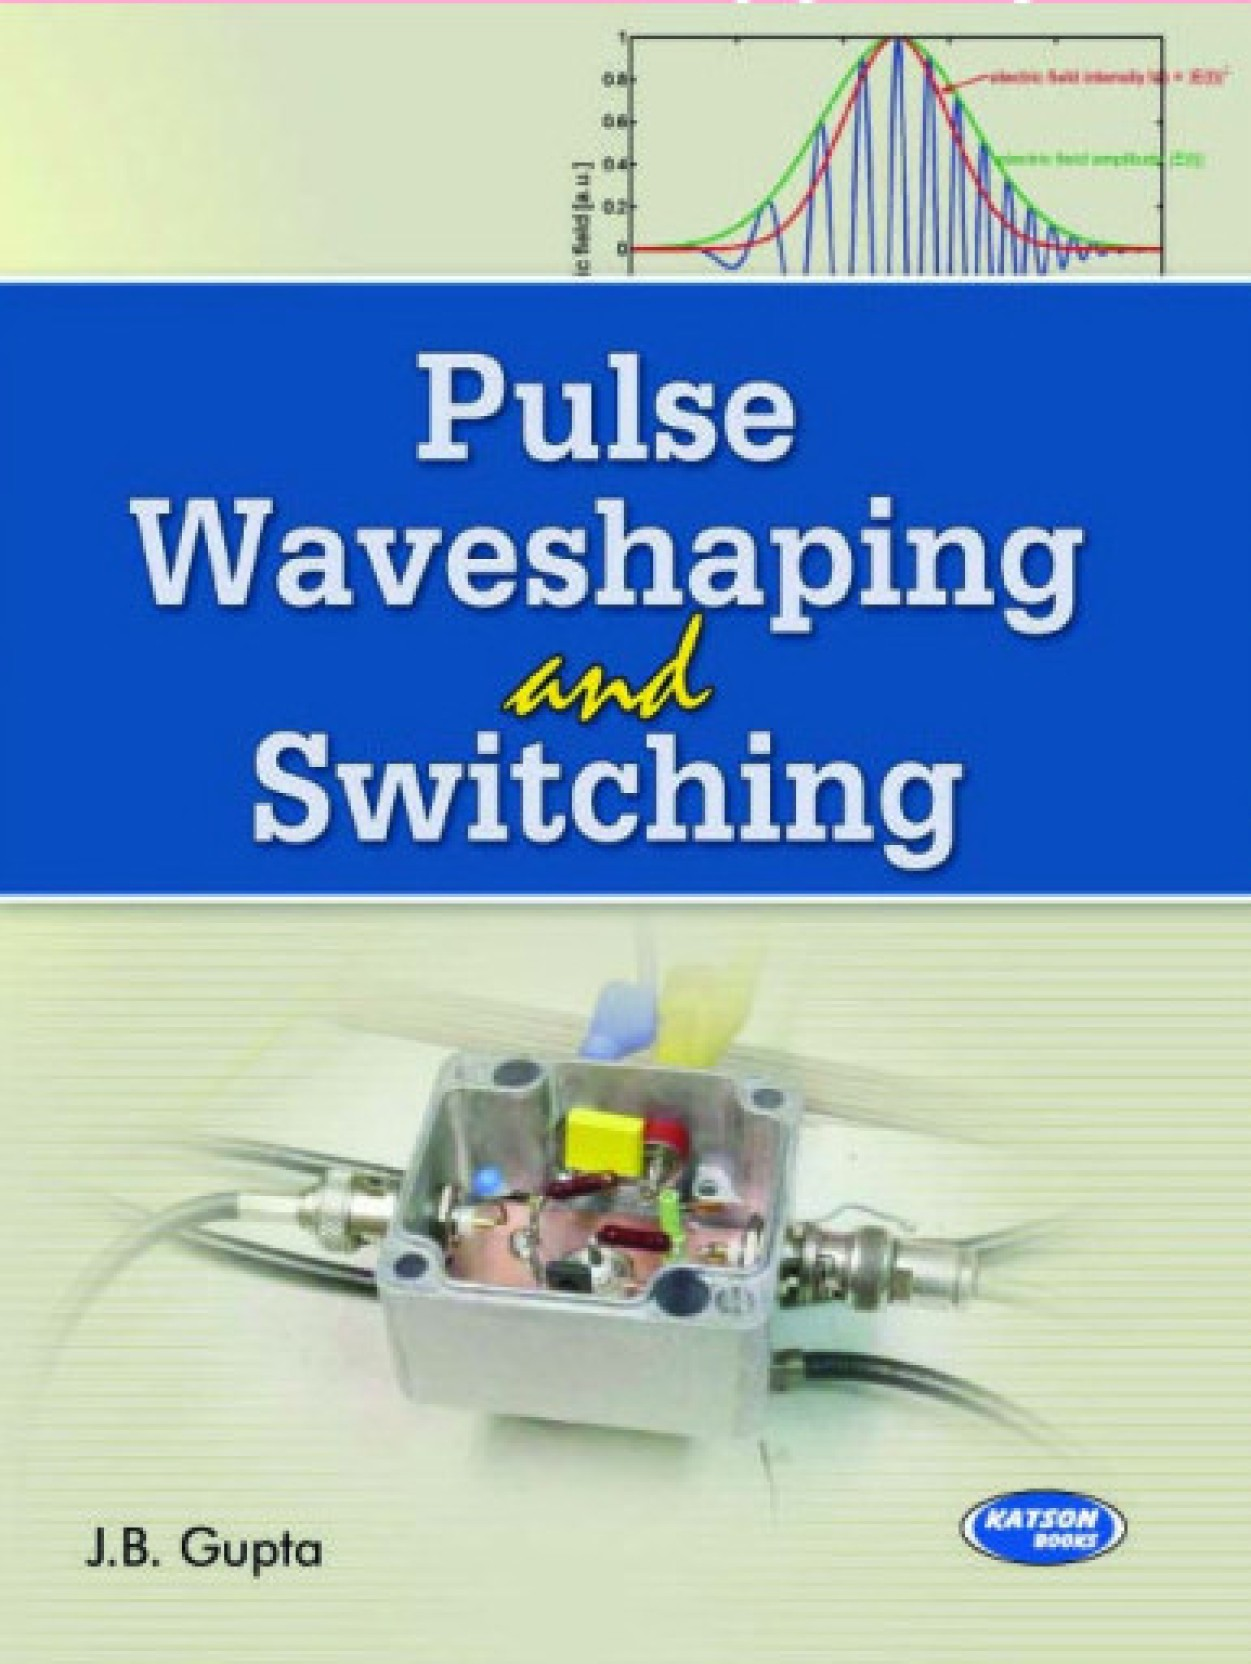 Pulse Waveshaping And Switching Buy Electronic Circuit By Jb Gupta Add To Cart